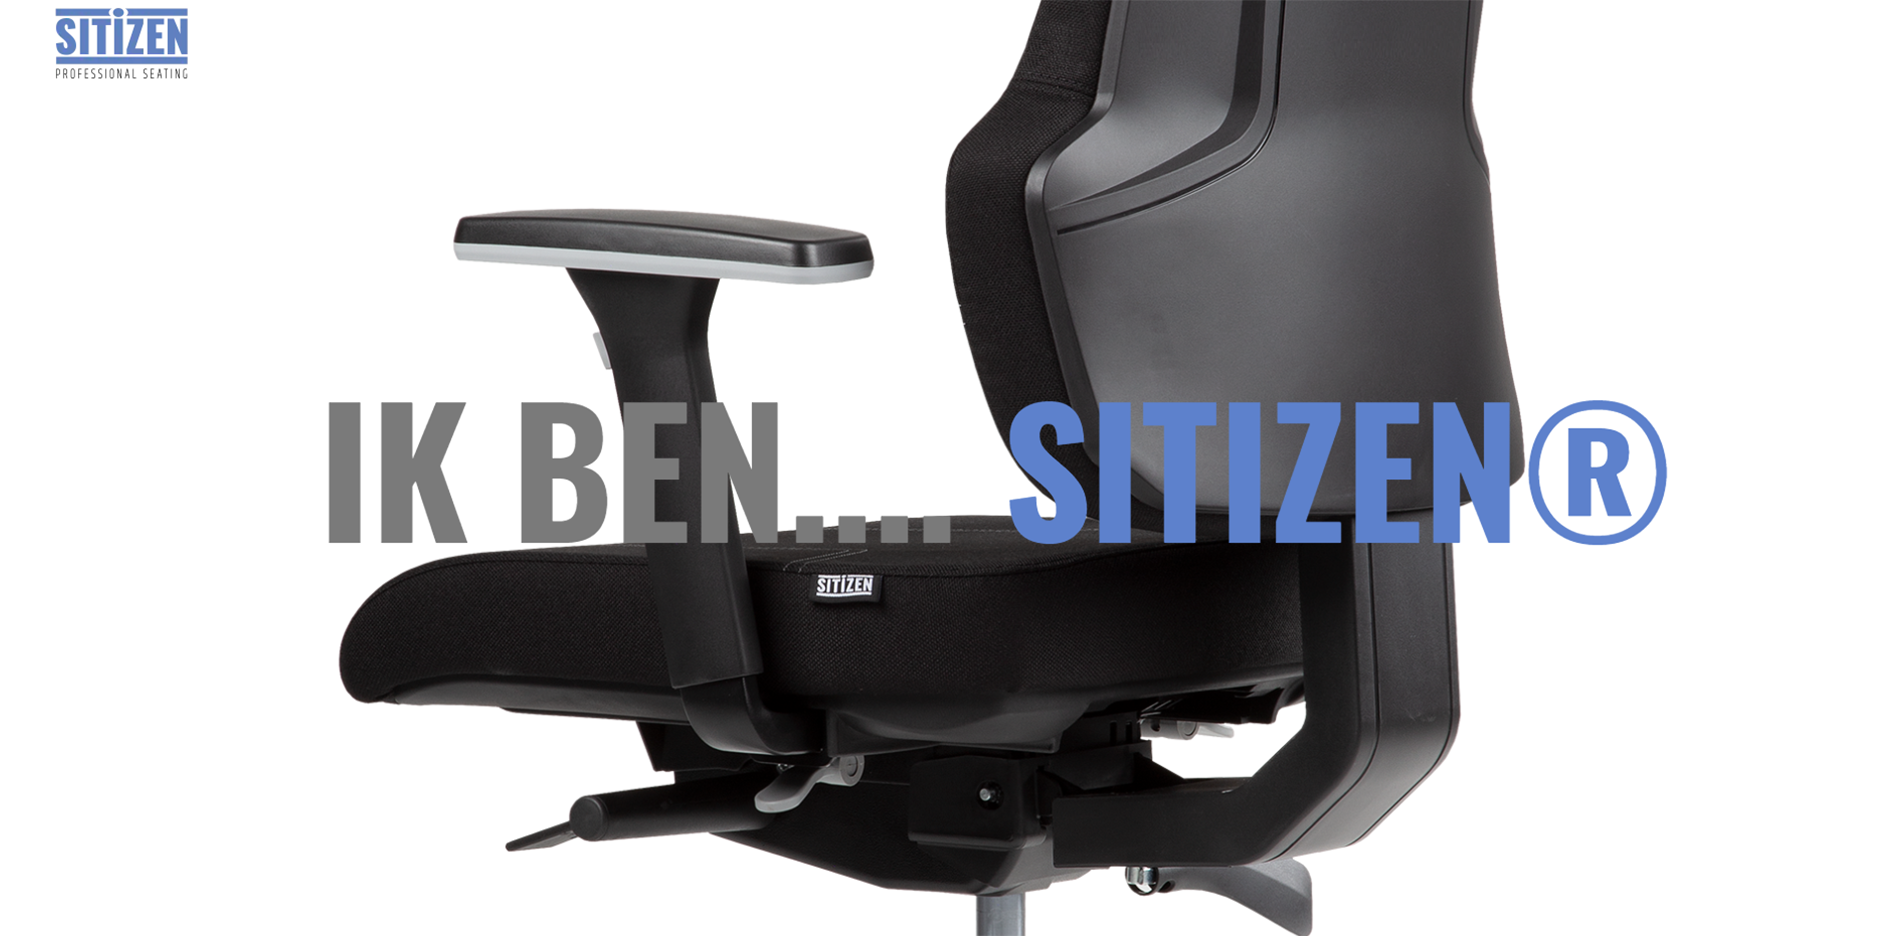 SITIZEN ® professional seating